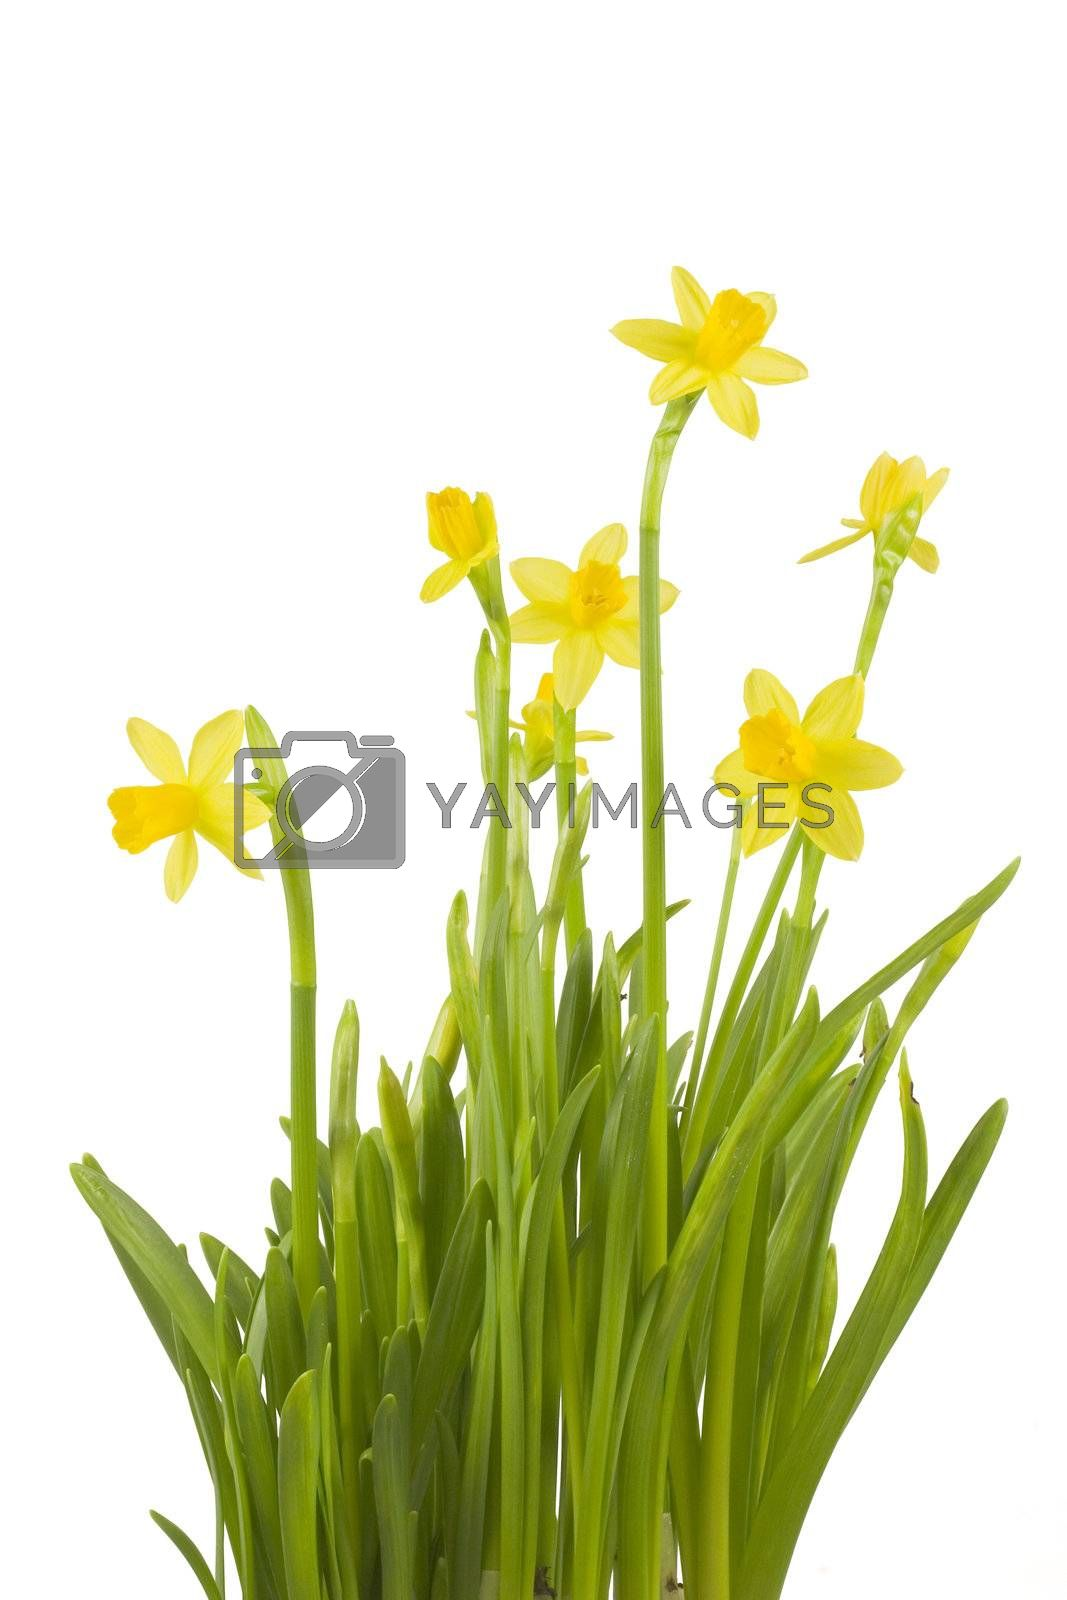 A bunch of daffodils isolated on white